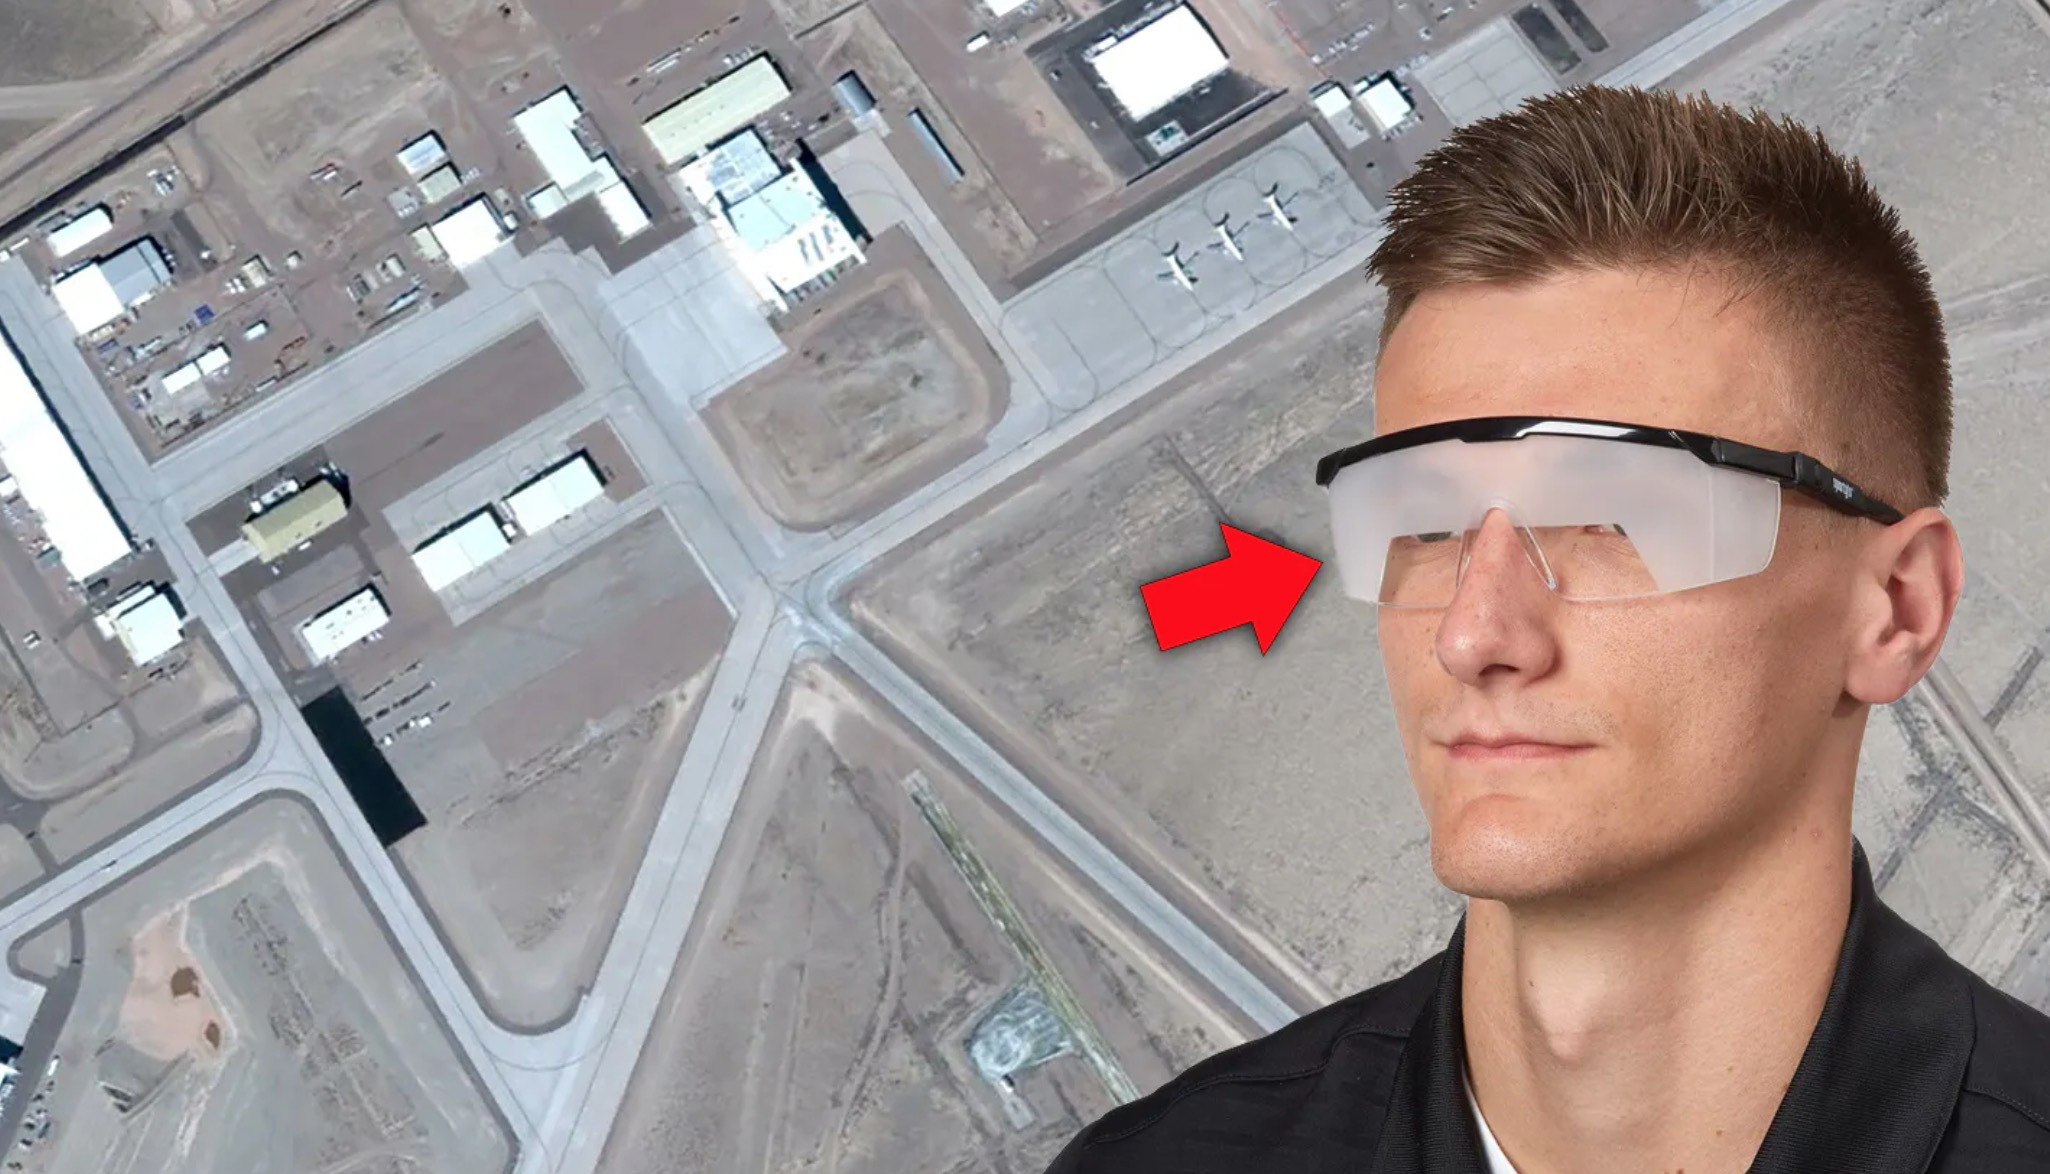 Visitors To Area 51 Have To Wear 'Foggles' That Severely Limit Vision When Moving About